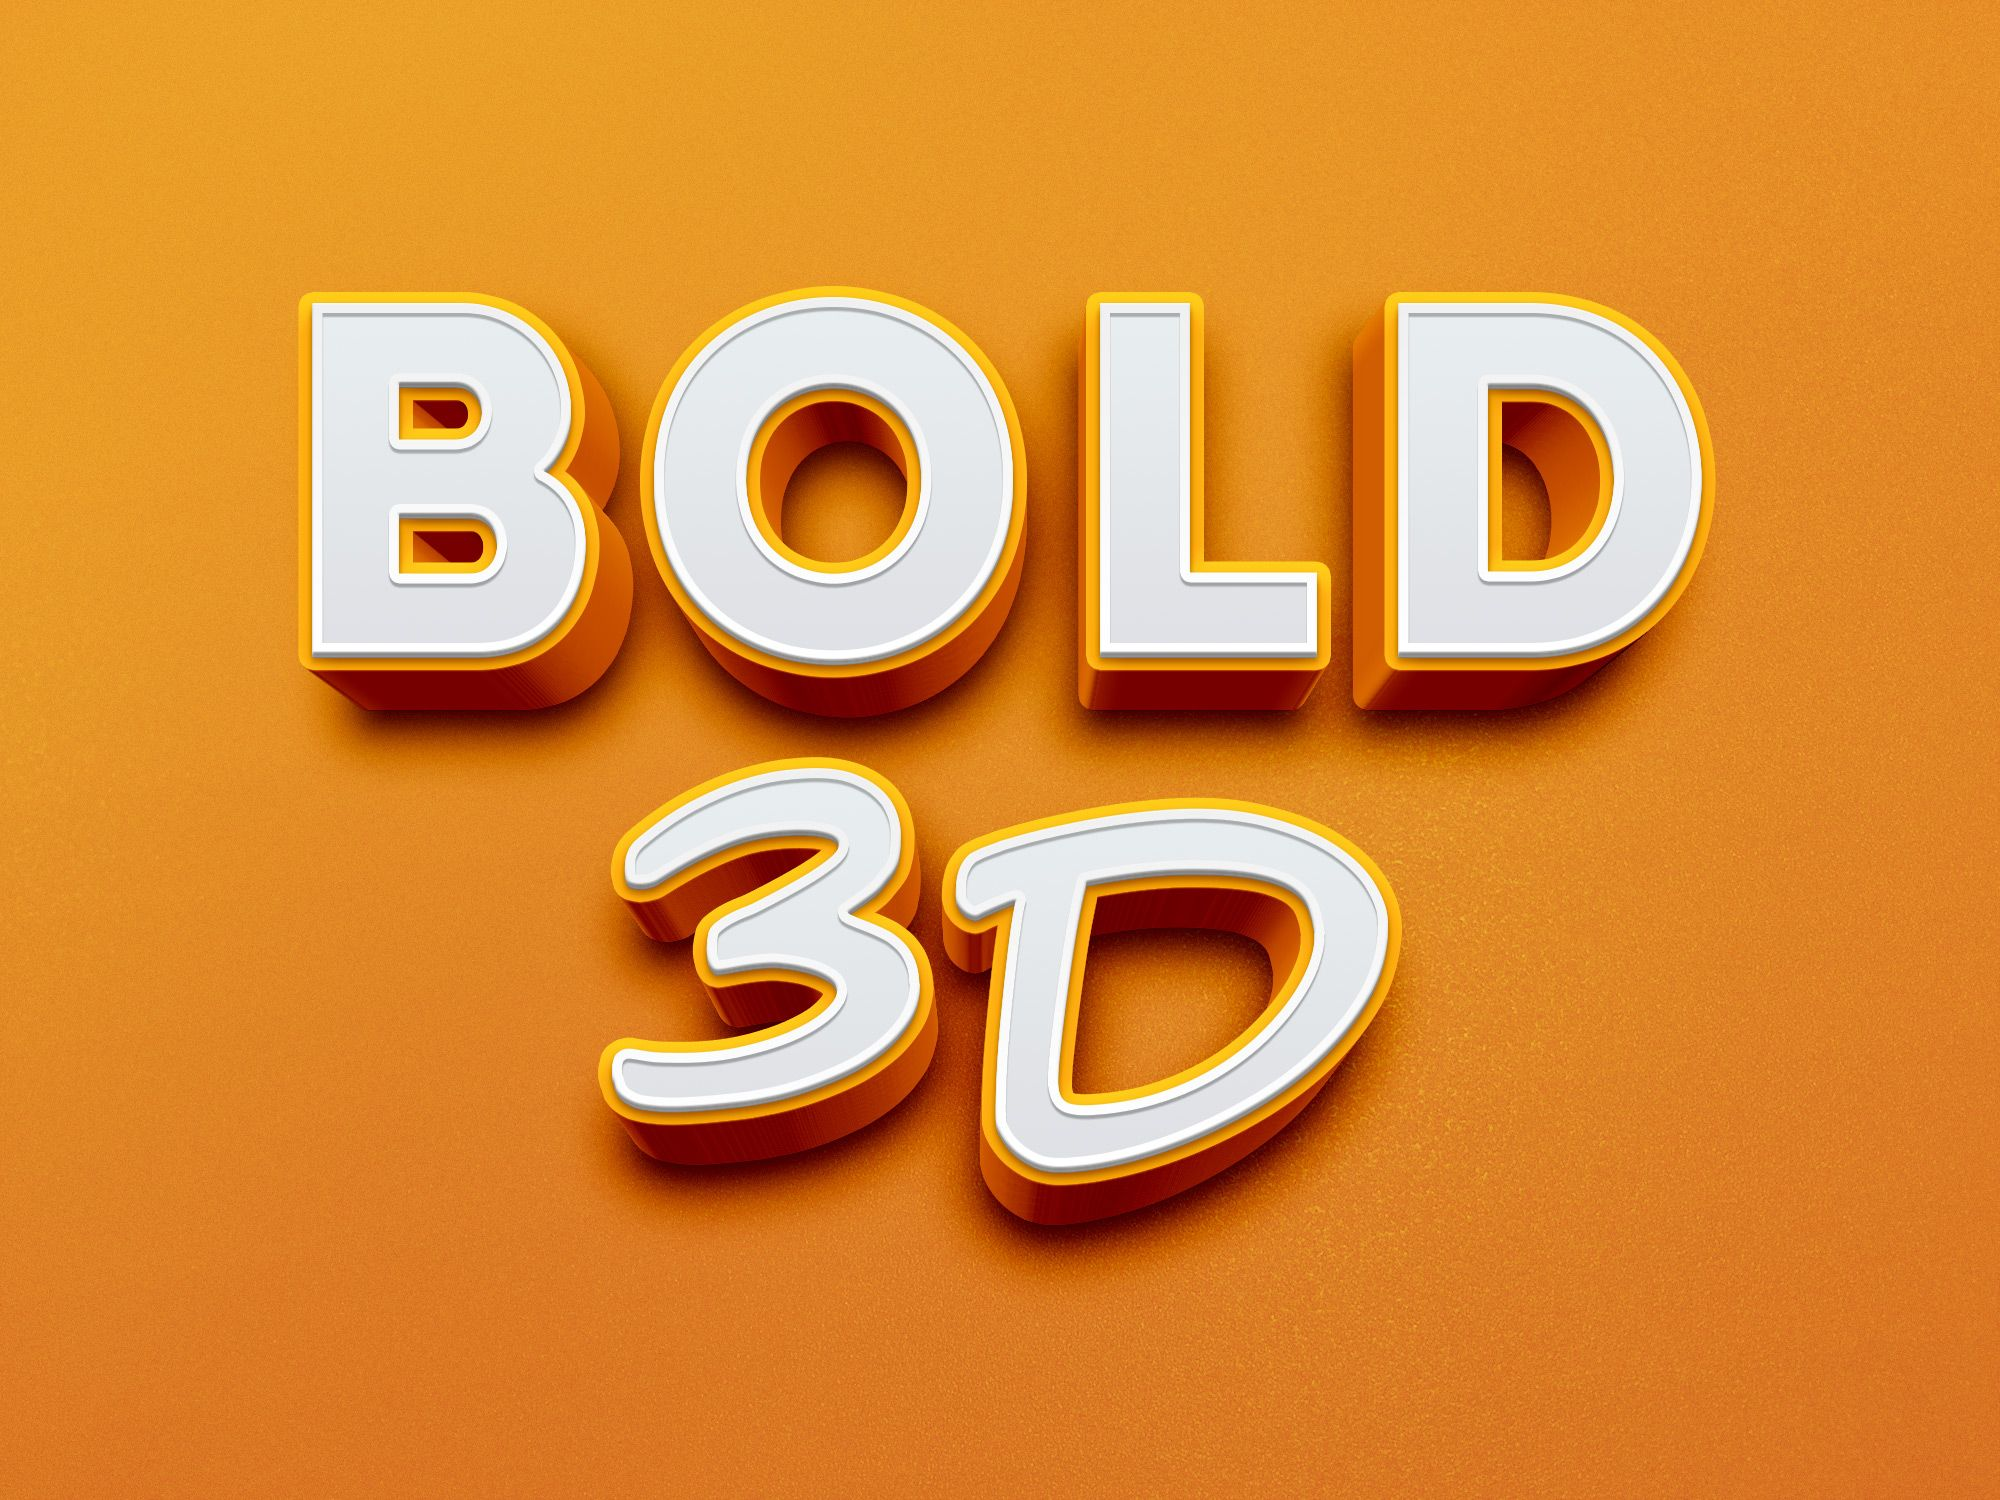 This is a striking and original 3D text effect